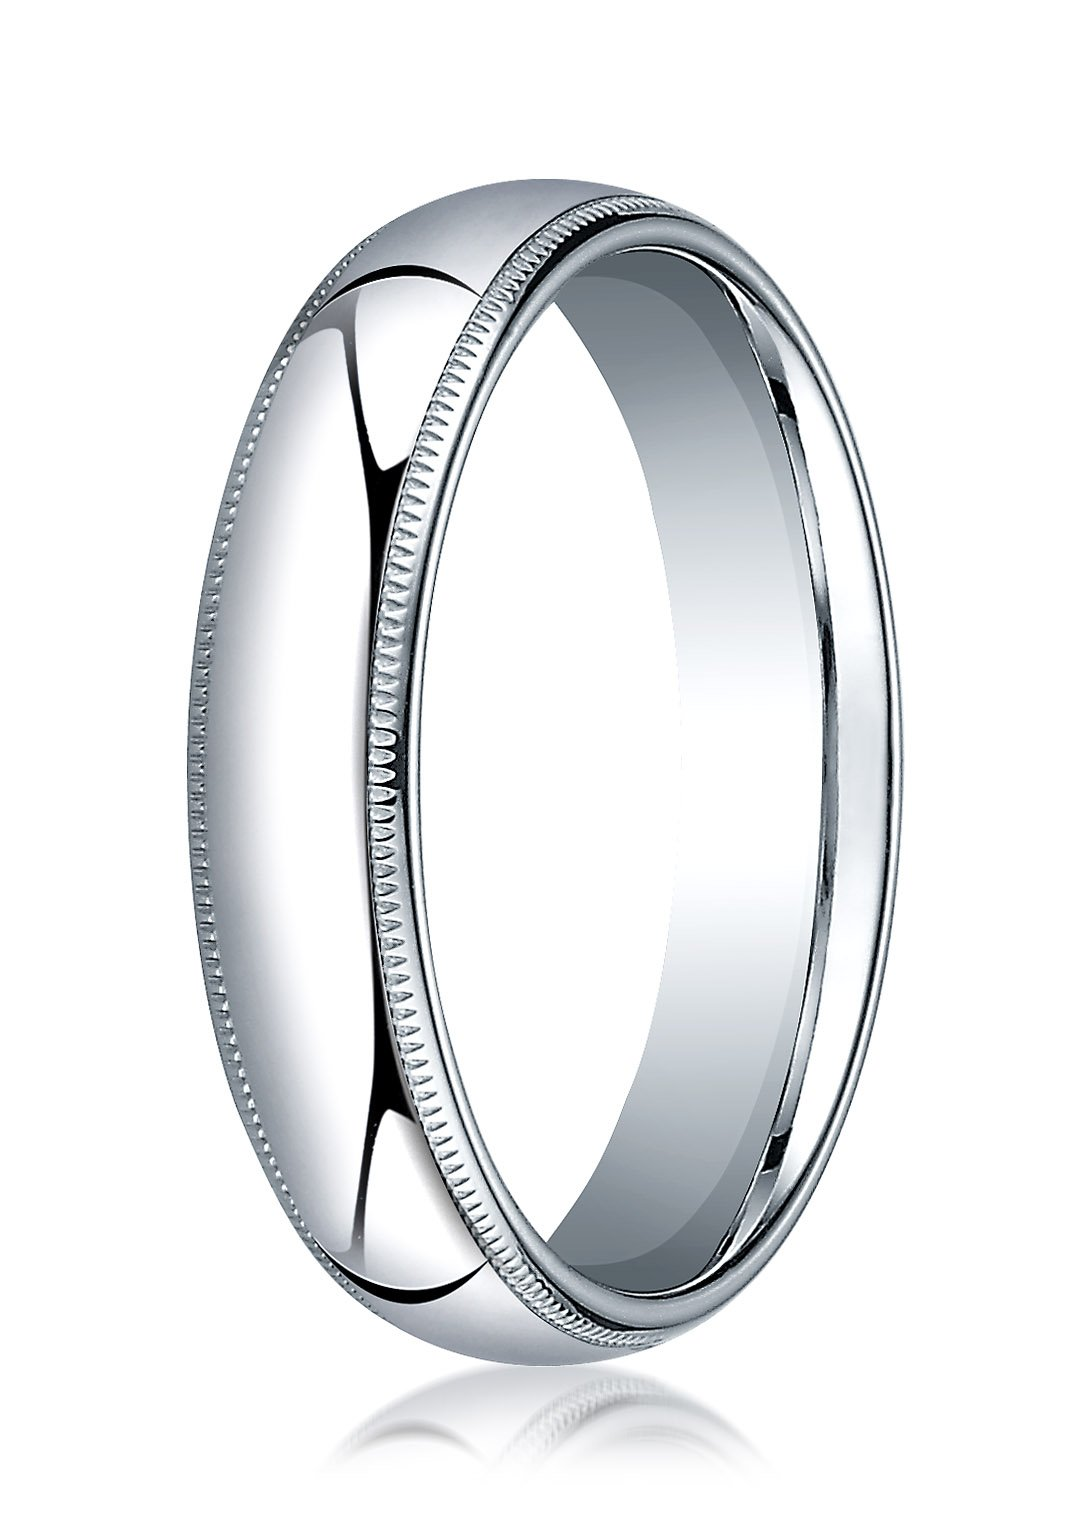 Mens 10K White Gold, 5mm Slightly Domed Comfort-Fit Ring with Milgrain (sz 13.5)